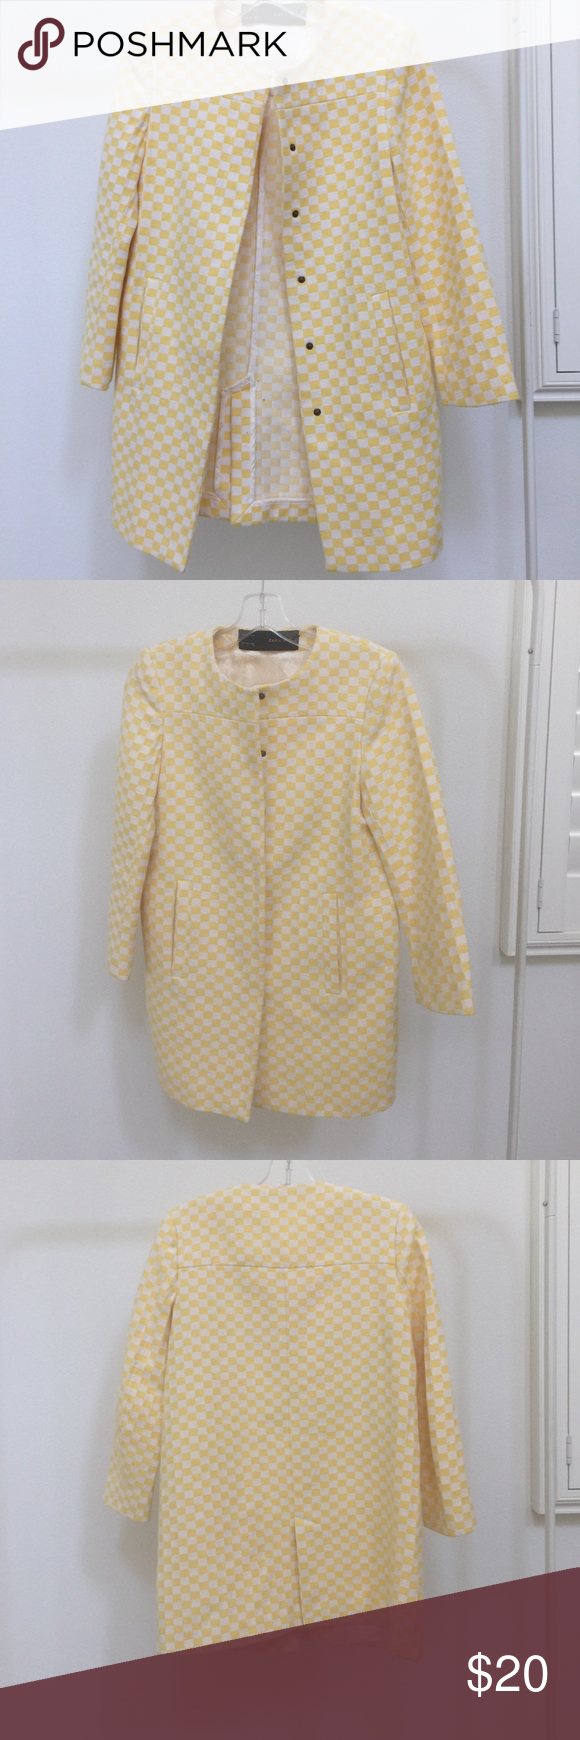 Zara coat White and yellow checkerboard print coat by Zara. Round neck.  With buttons and pockets. Structured material. Easy wash and iron. Zara Jackets & Coats Blazers